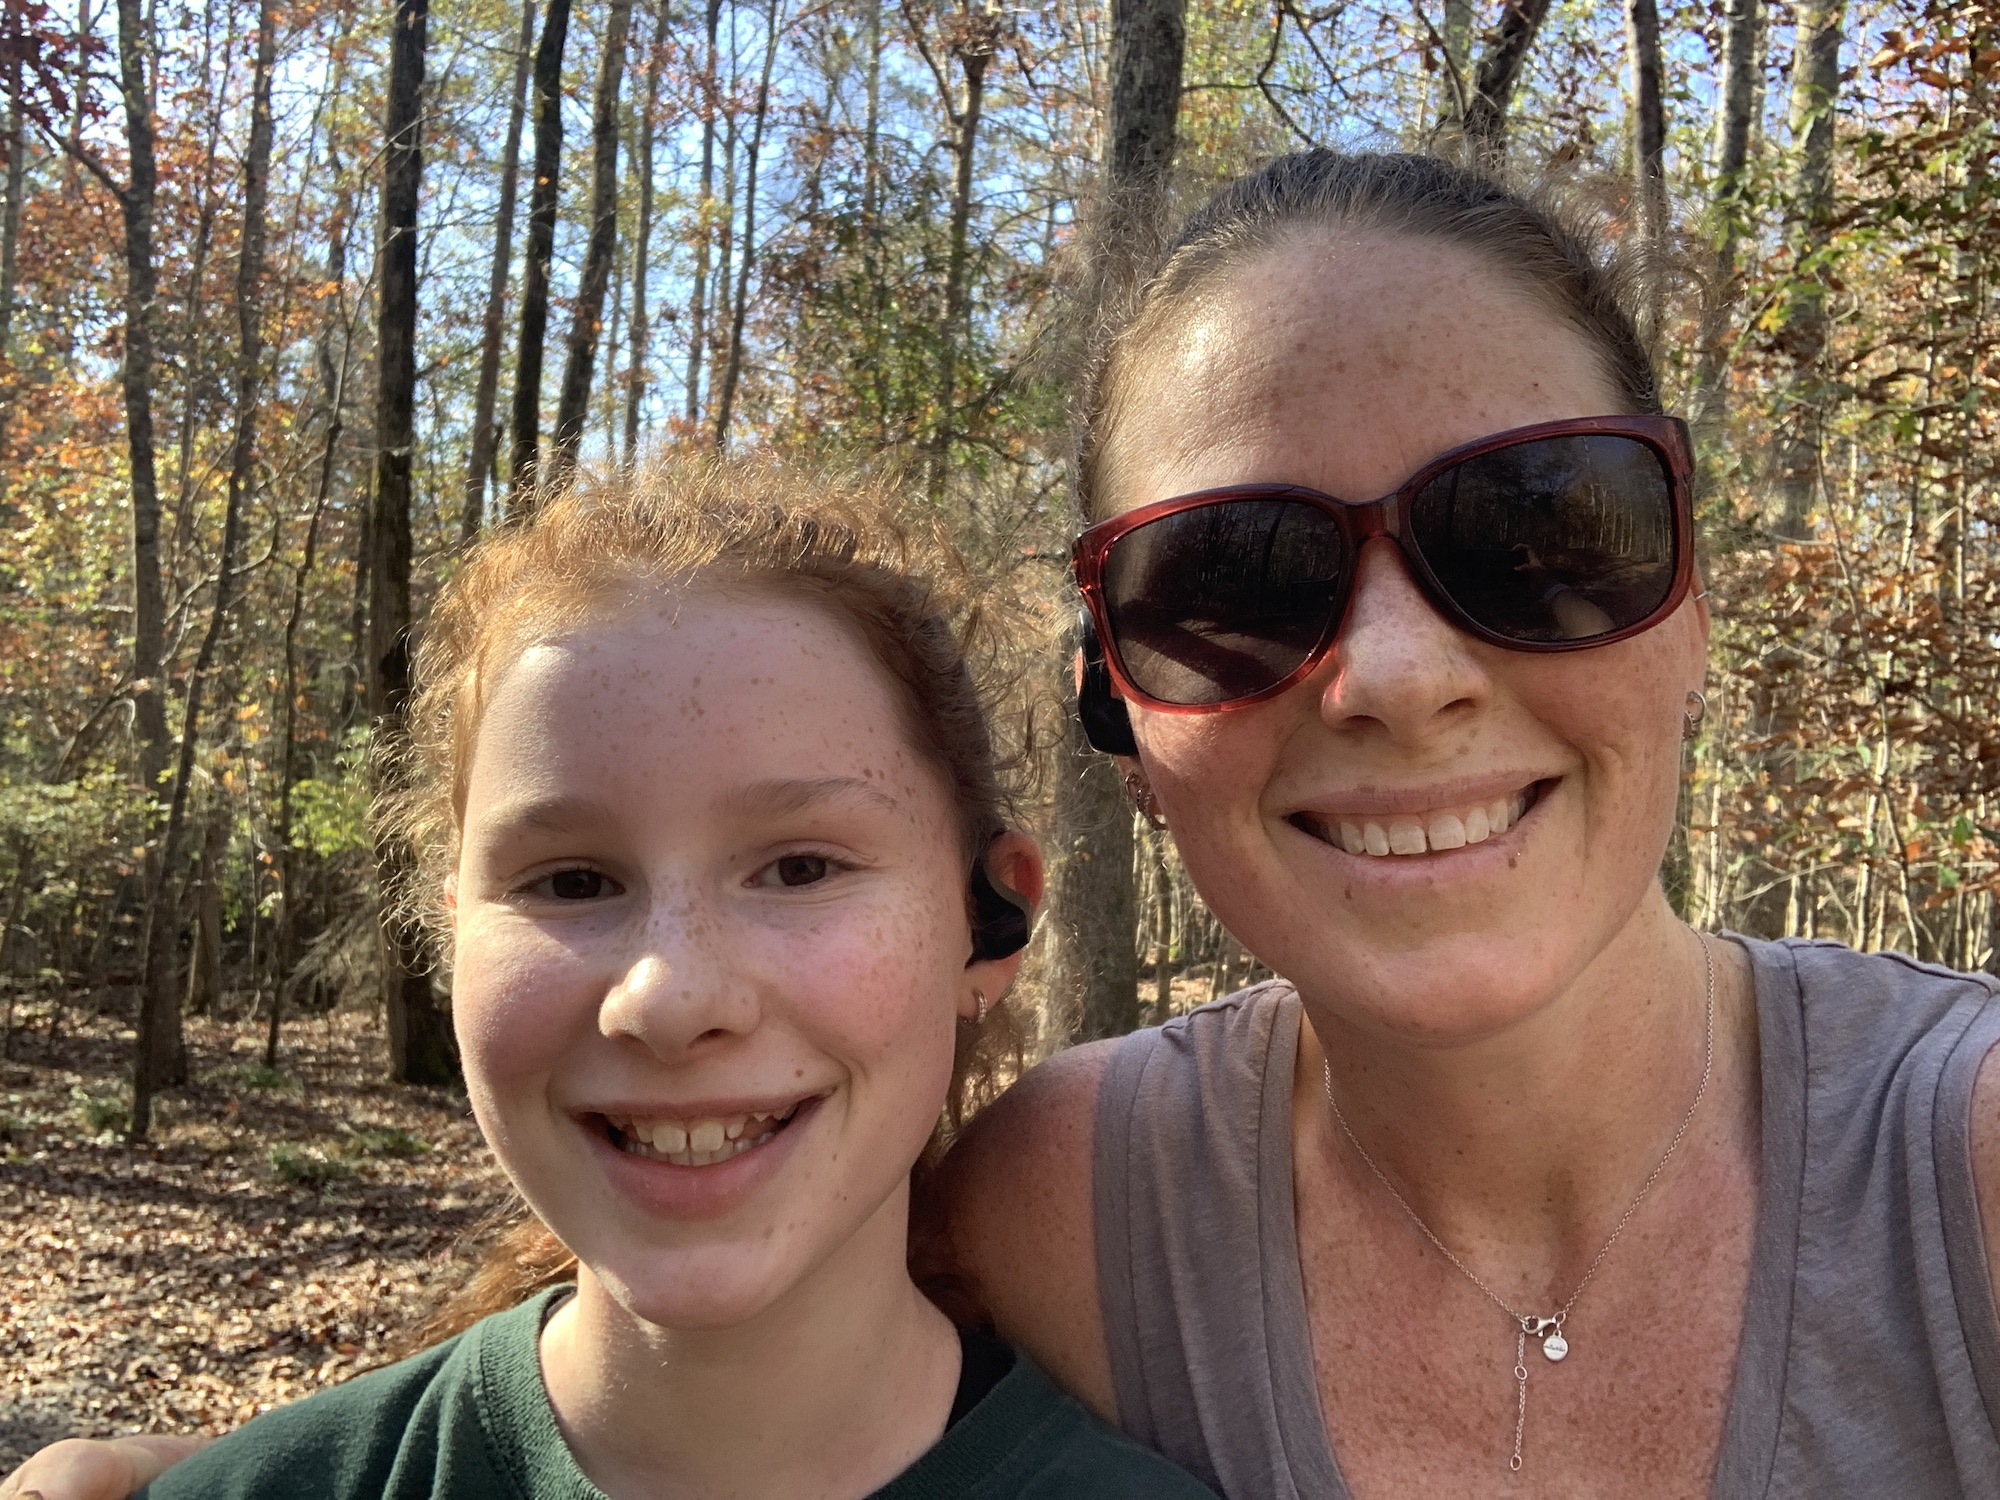 Mommy and me monday- n and me 3.5 mile run